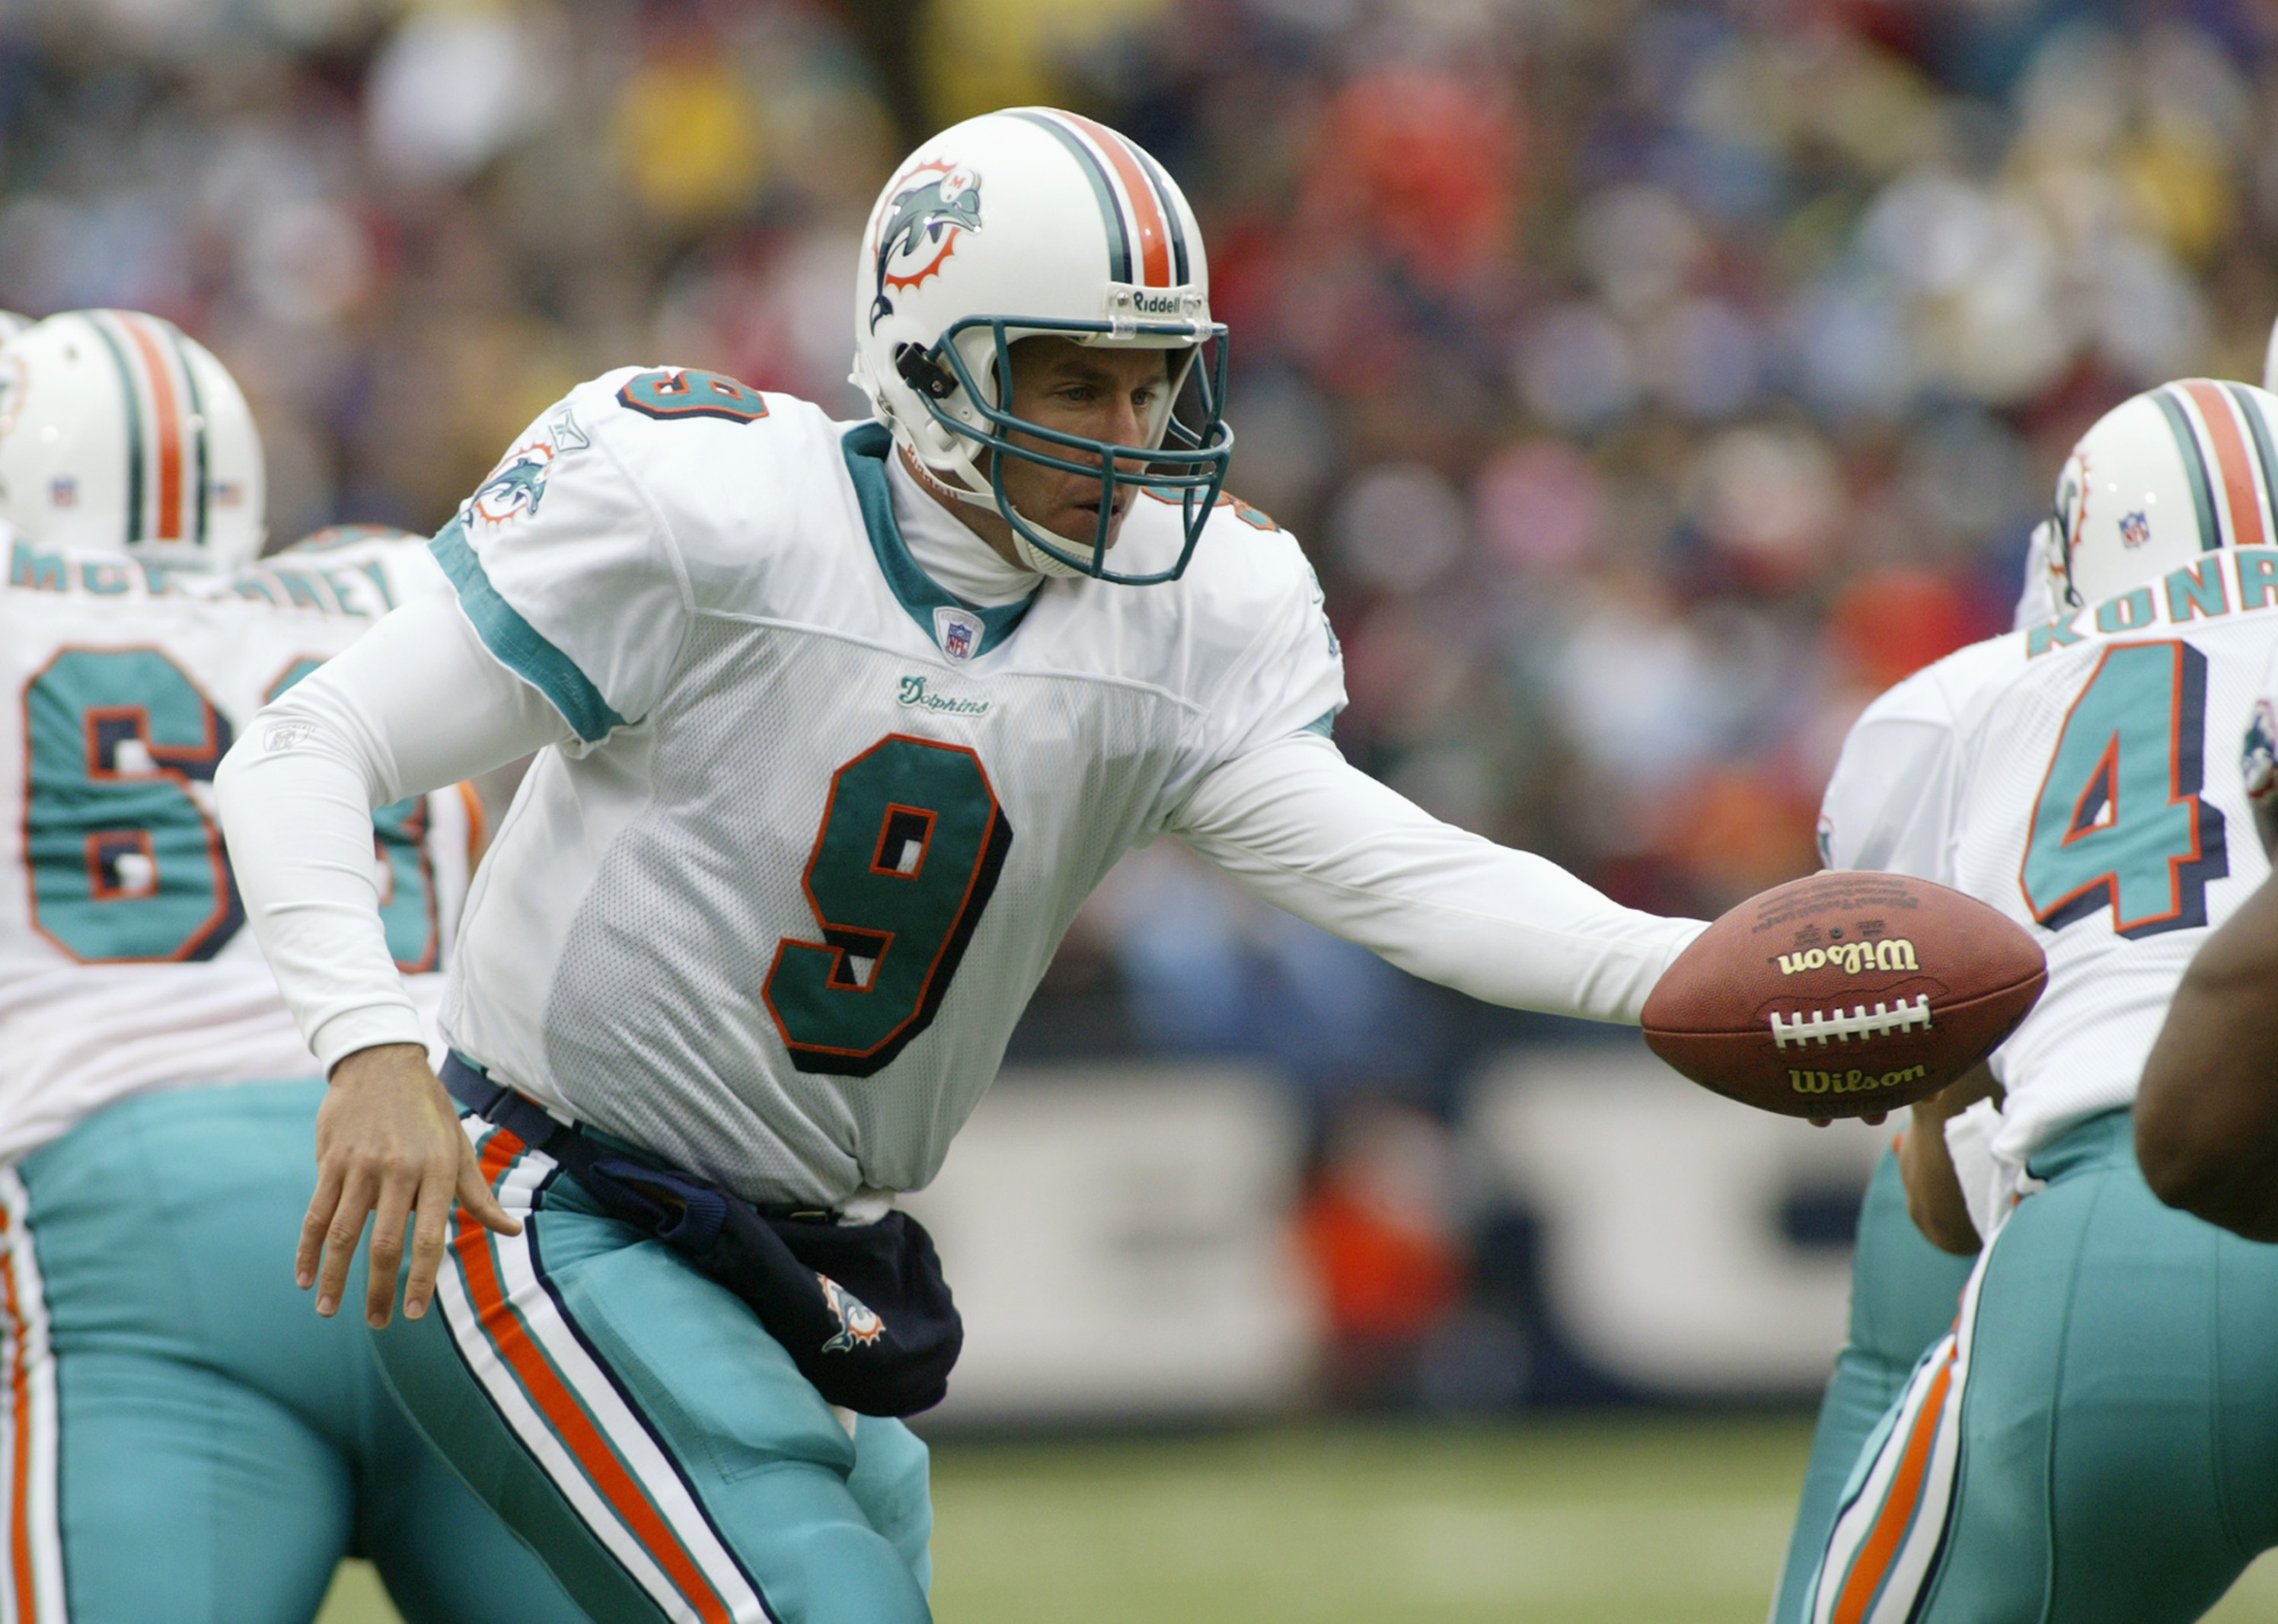 For Jay Fiedler, it wasn't about replacing Dan Marino.